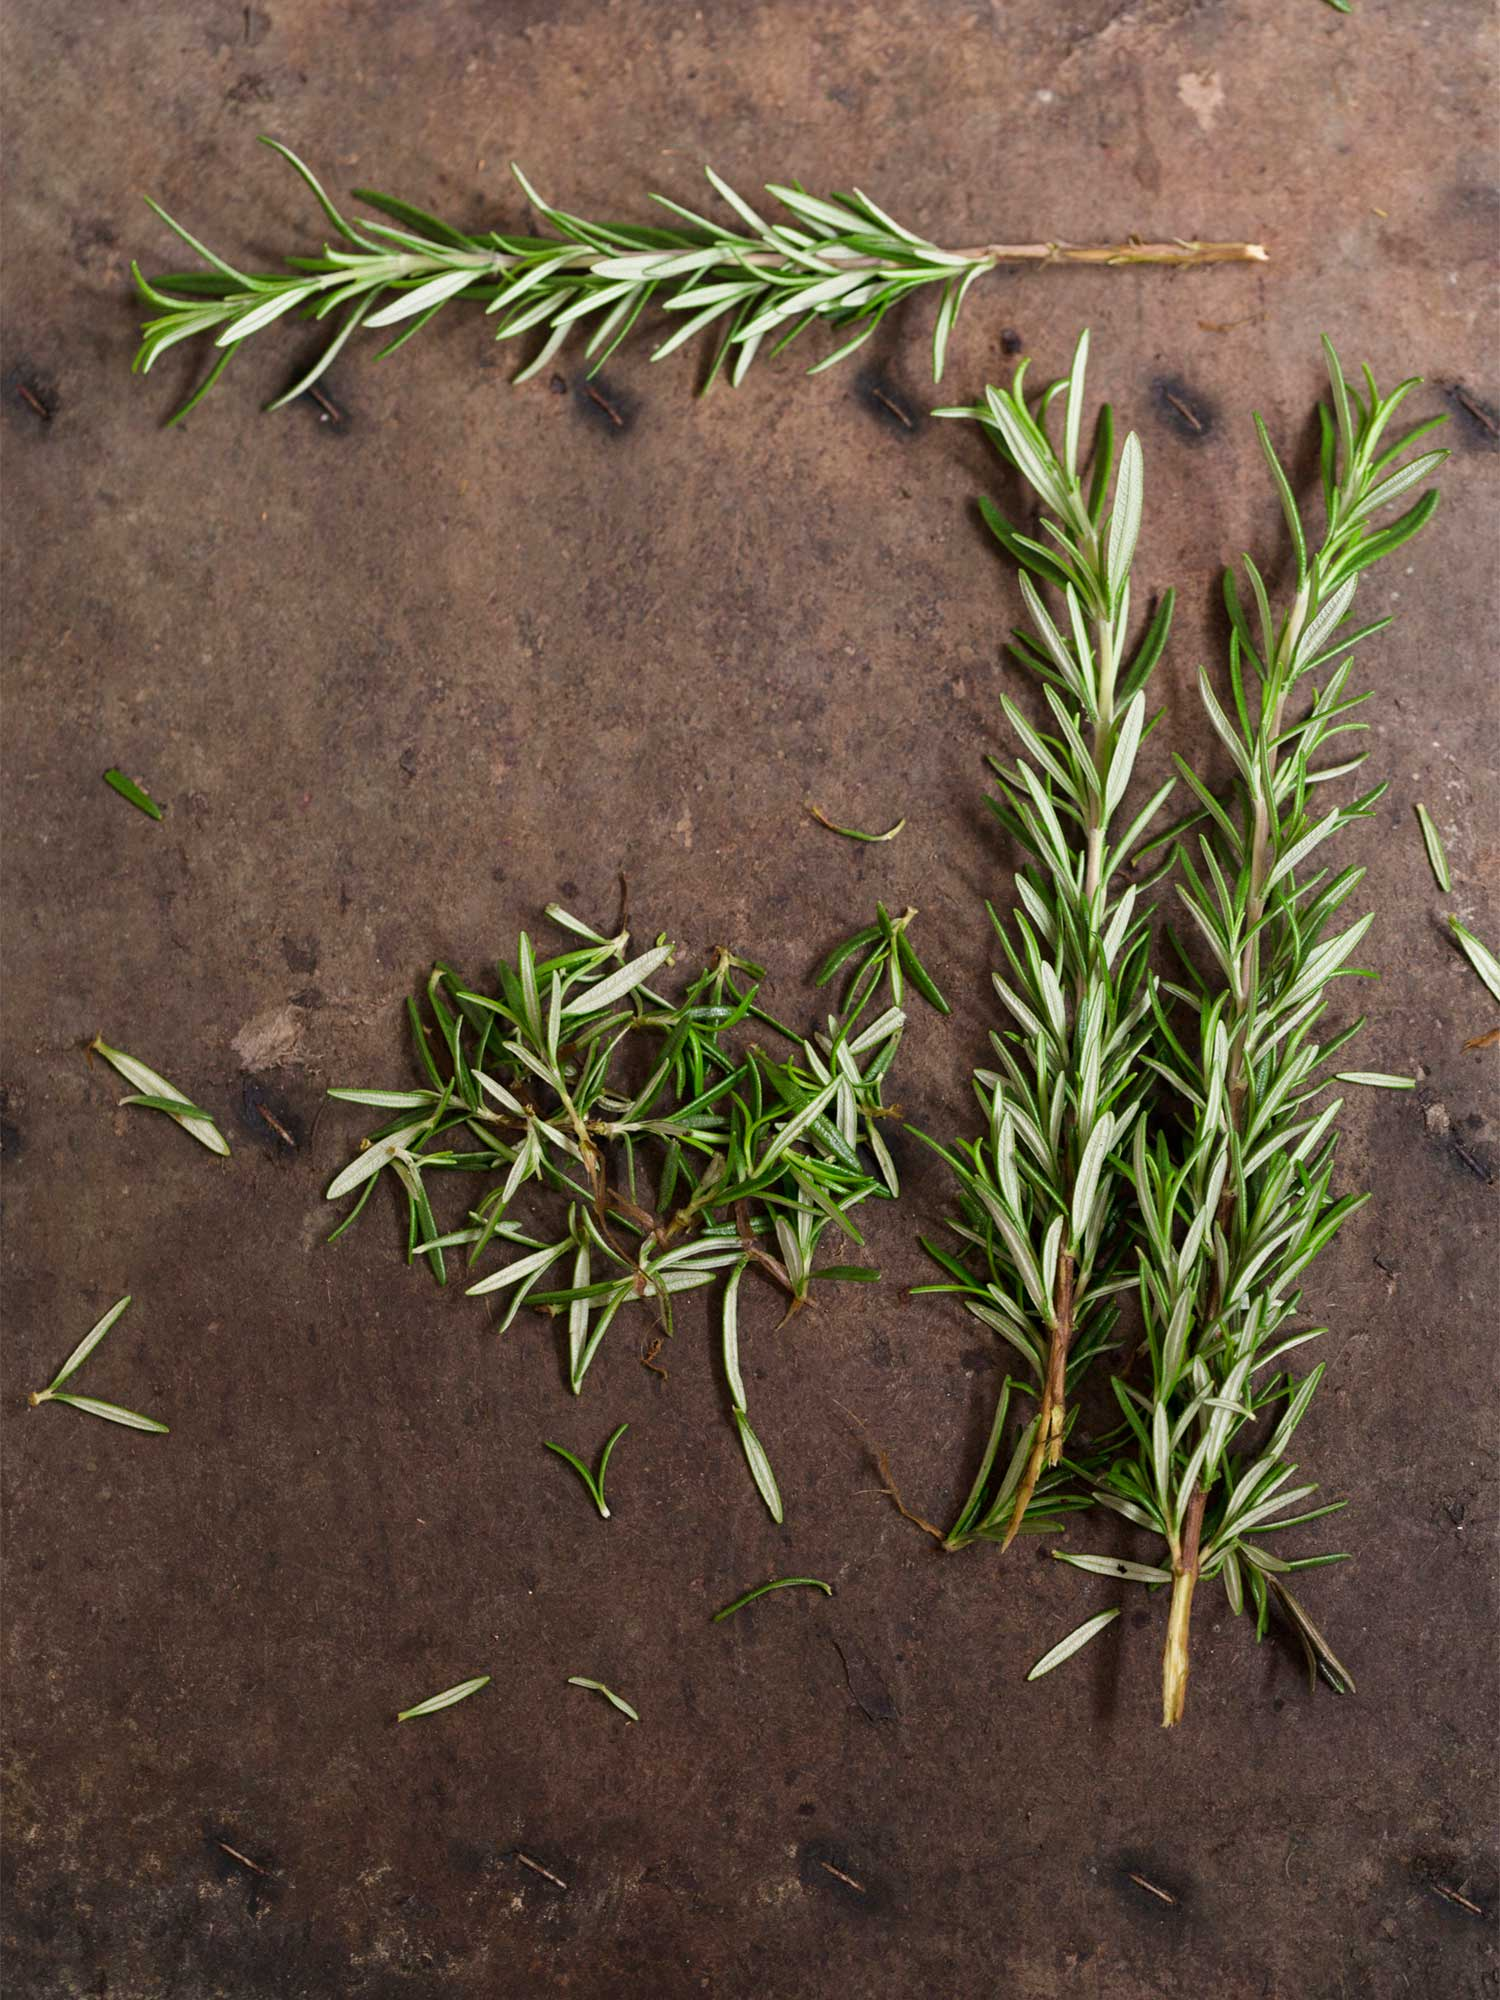 Gorgeous Rosemary Harvest How To Grow Rosemary How To Harvest Rosemary Winter How To Harvest Rosemary Thyme houzz-02 How To Harvest Rosemary